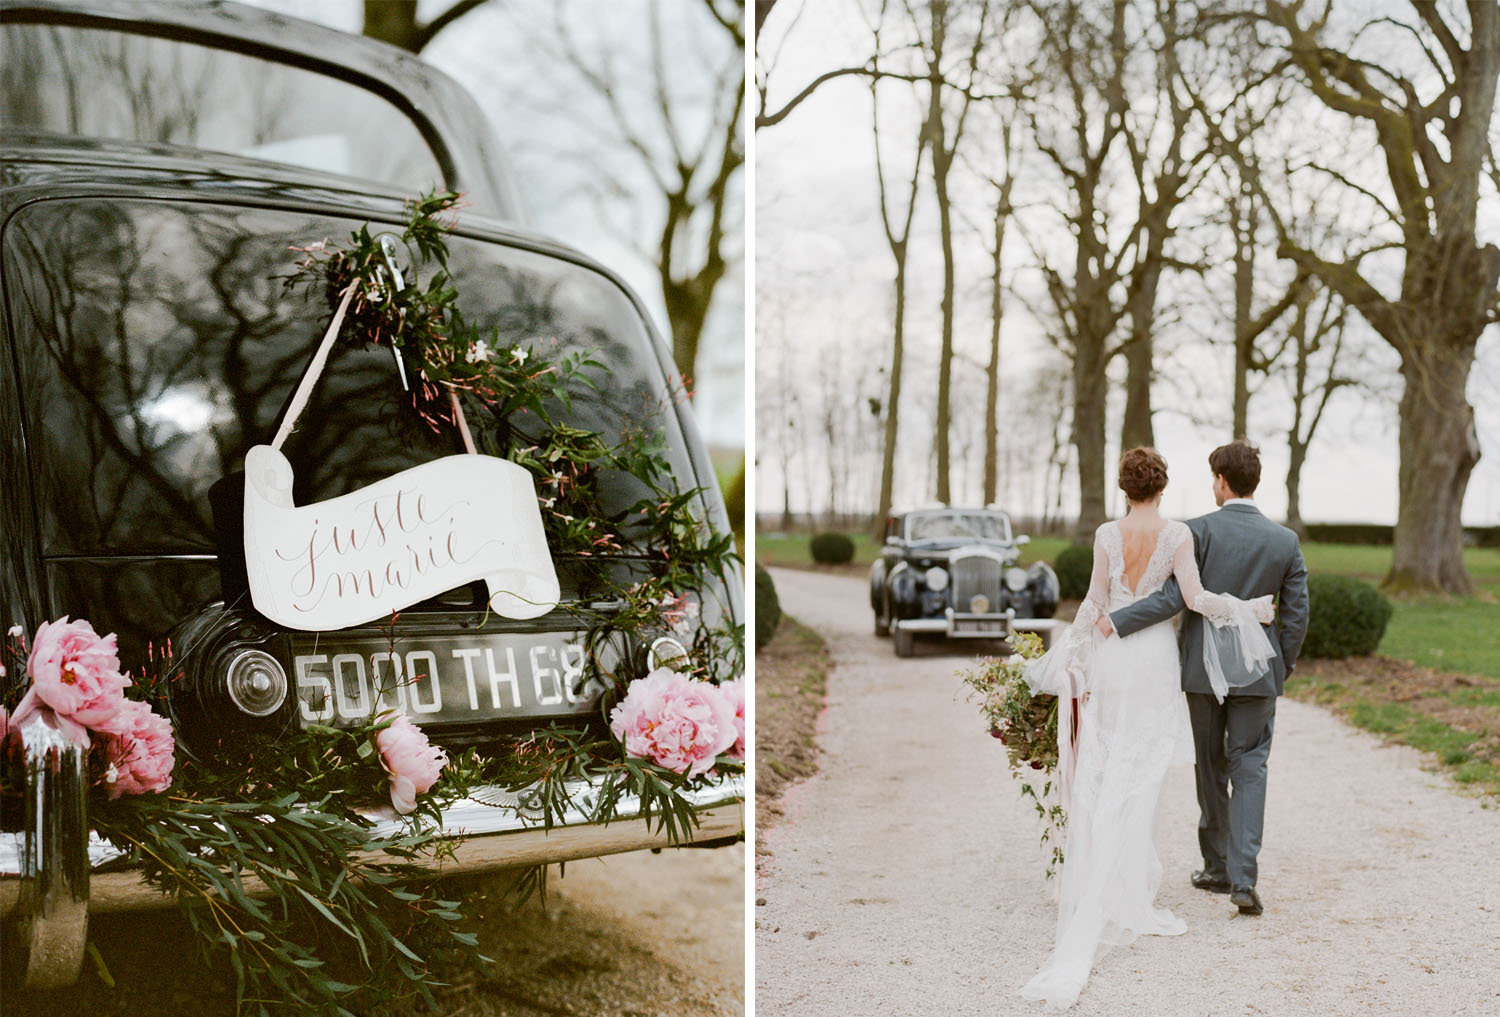 A just married getaway car at Chateau de Varennes in Burgundy, France; Sylvie Gil Photography